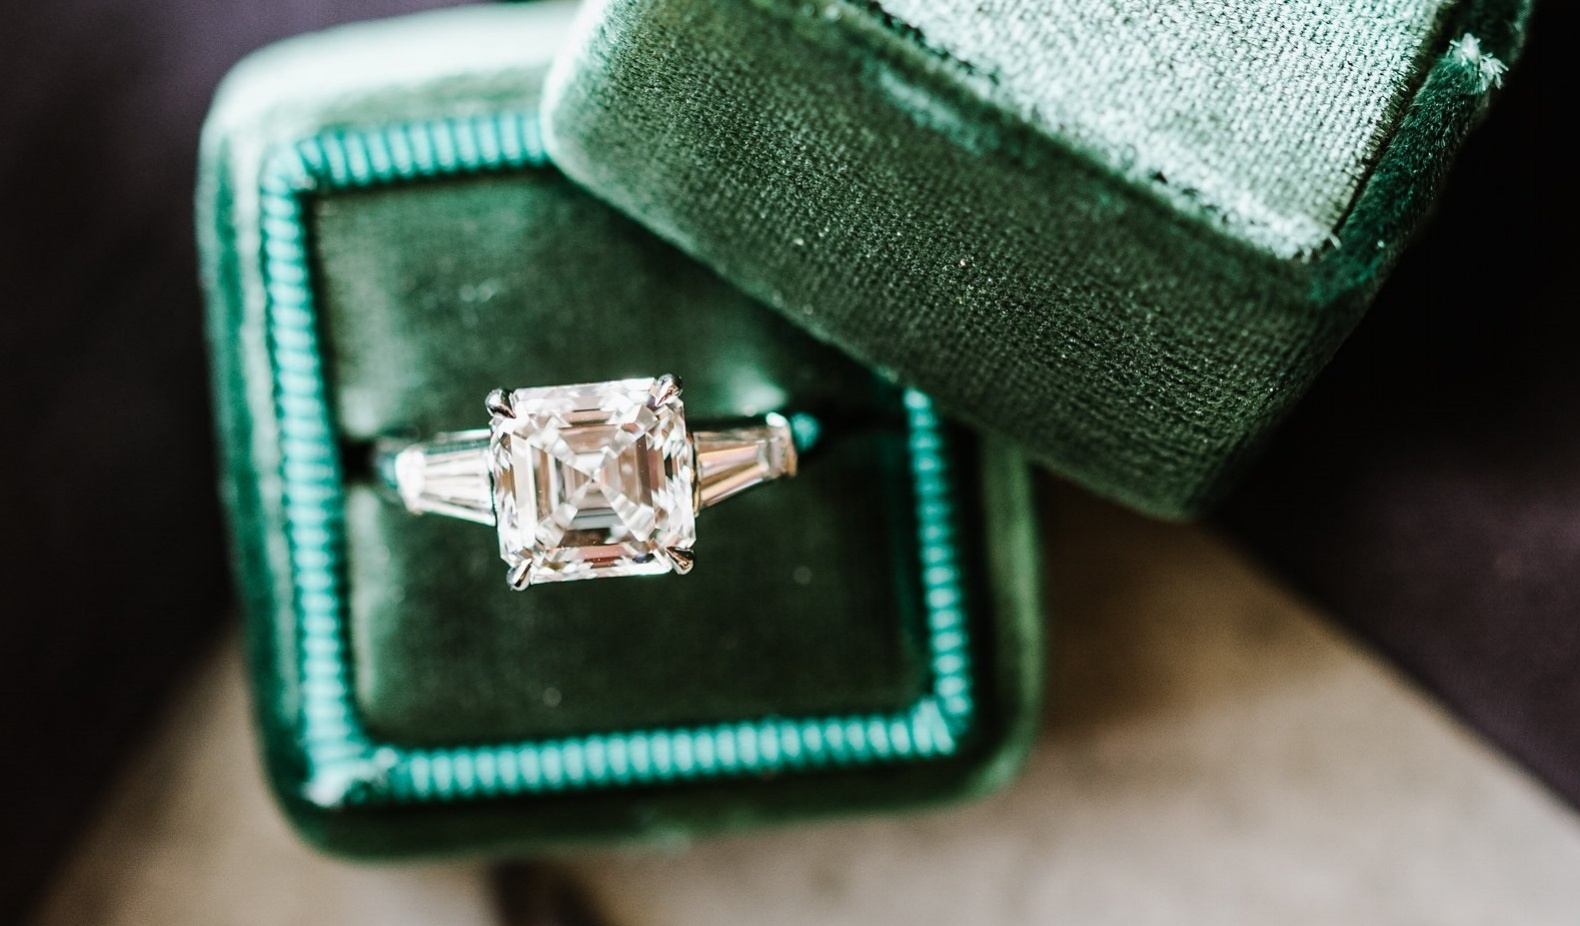 Choose a fancy cut diamond instead of the classic round shape